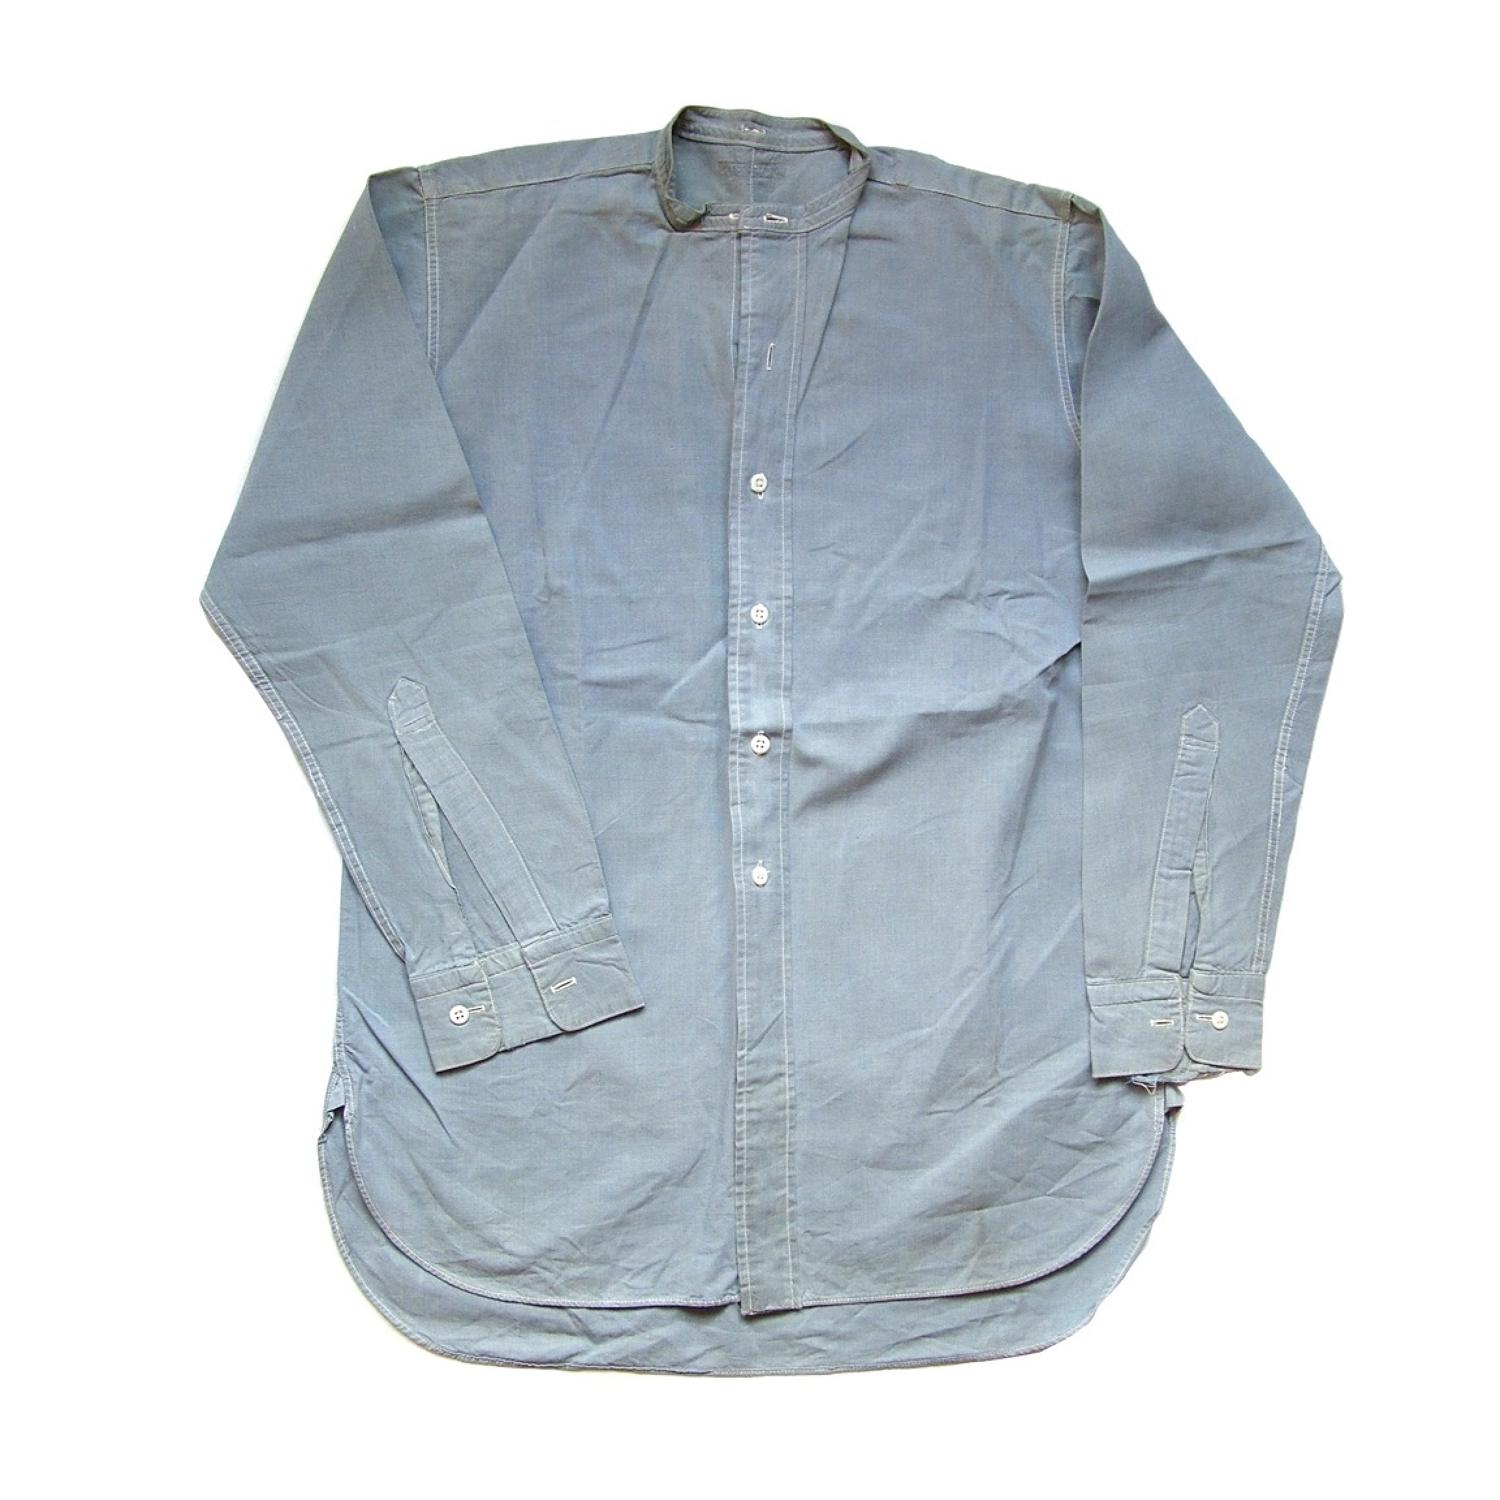 RAF other ranks shirt